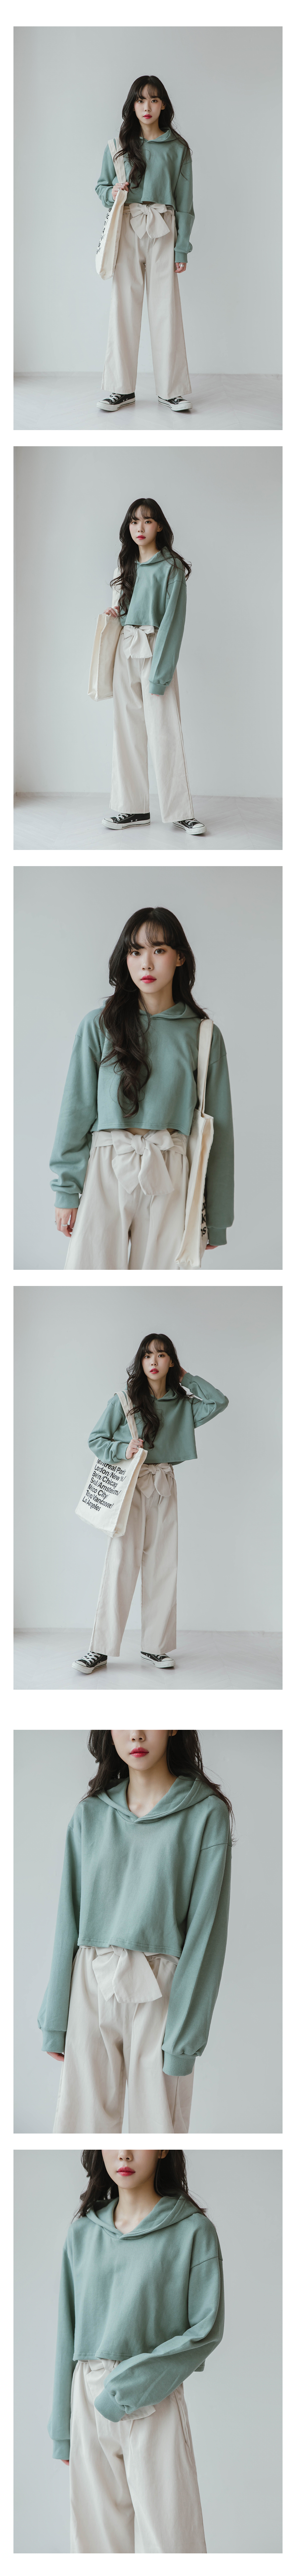 Daily Crop Hooded T-Shirt